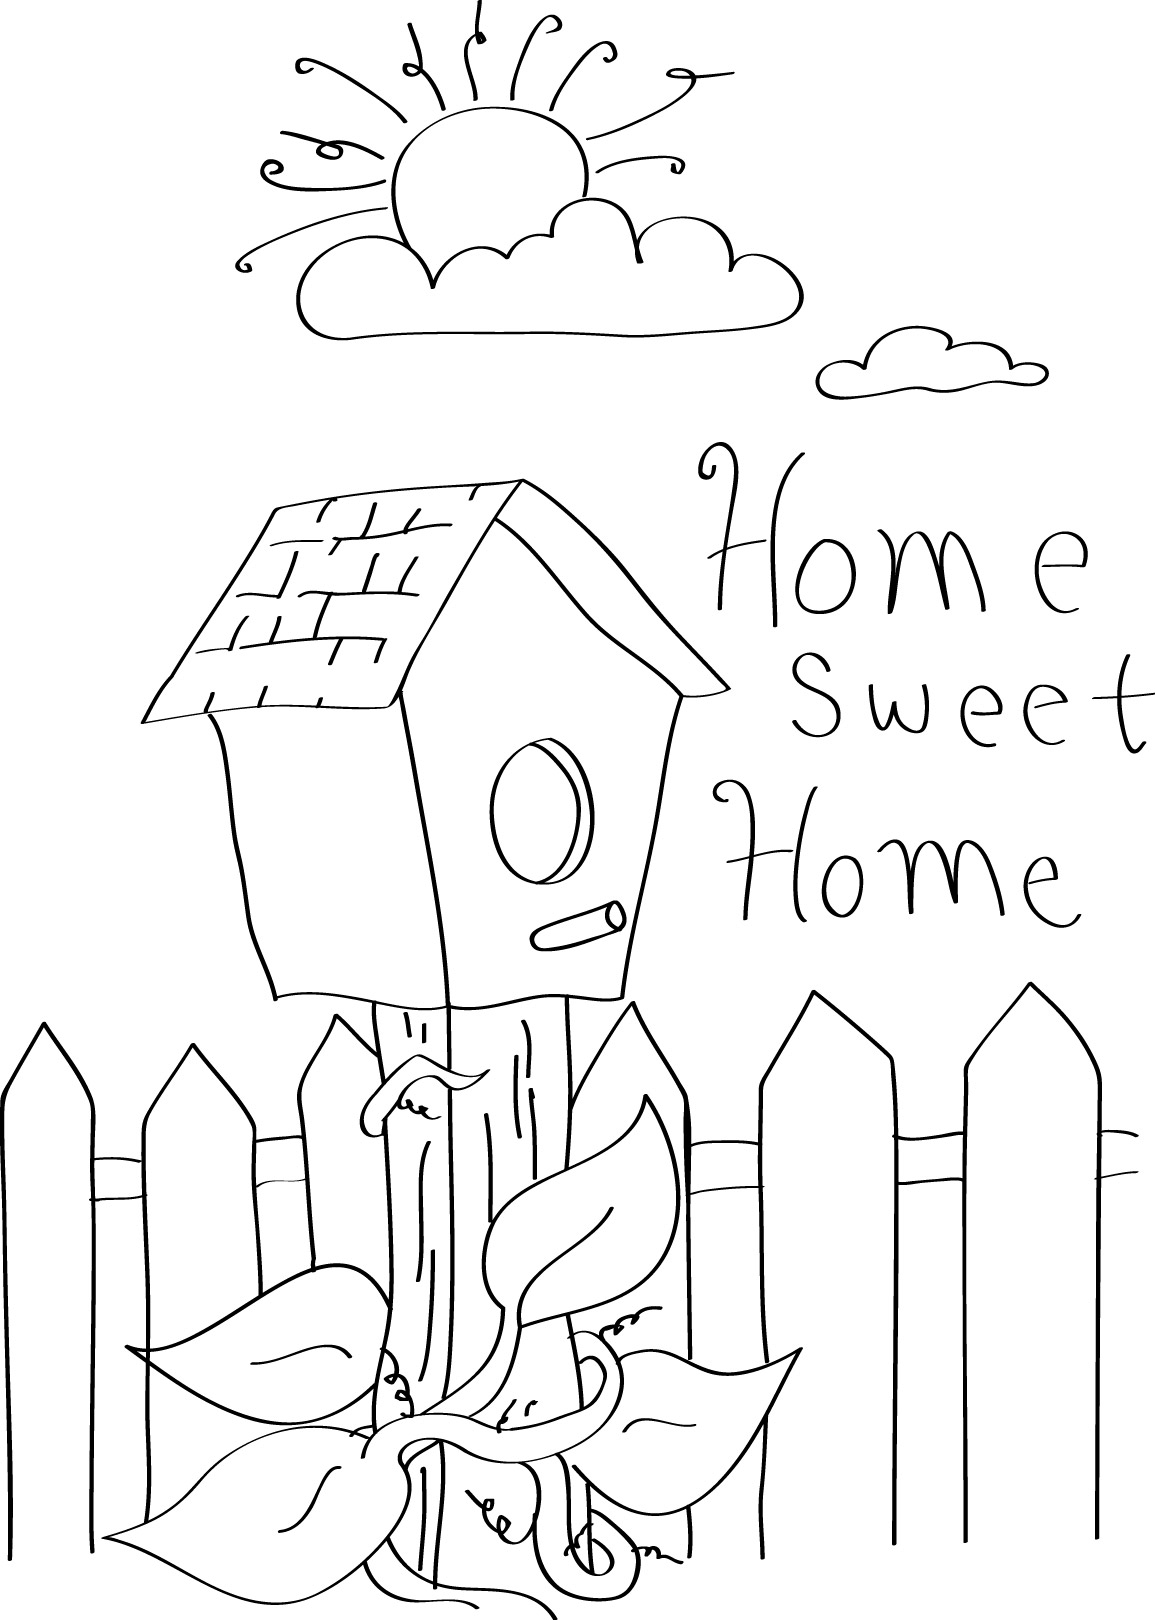 Home sweet home clip art clipart freeuse download Home Sweet Home Clipart - Clipart Kid clipart freeuse download